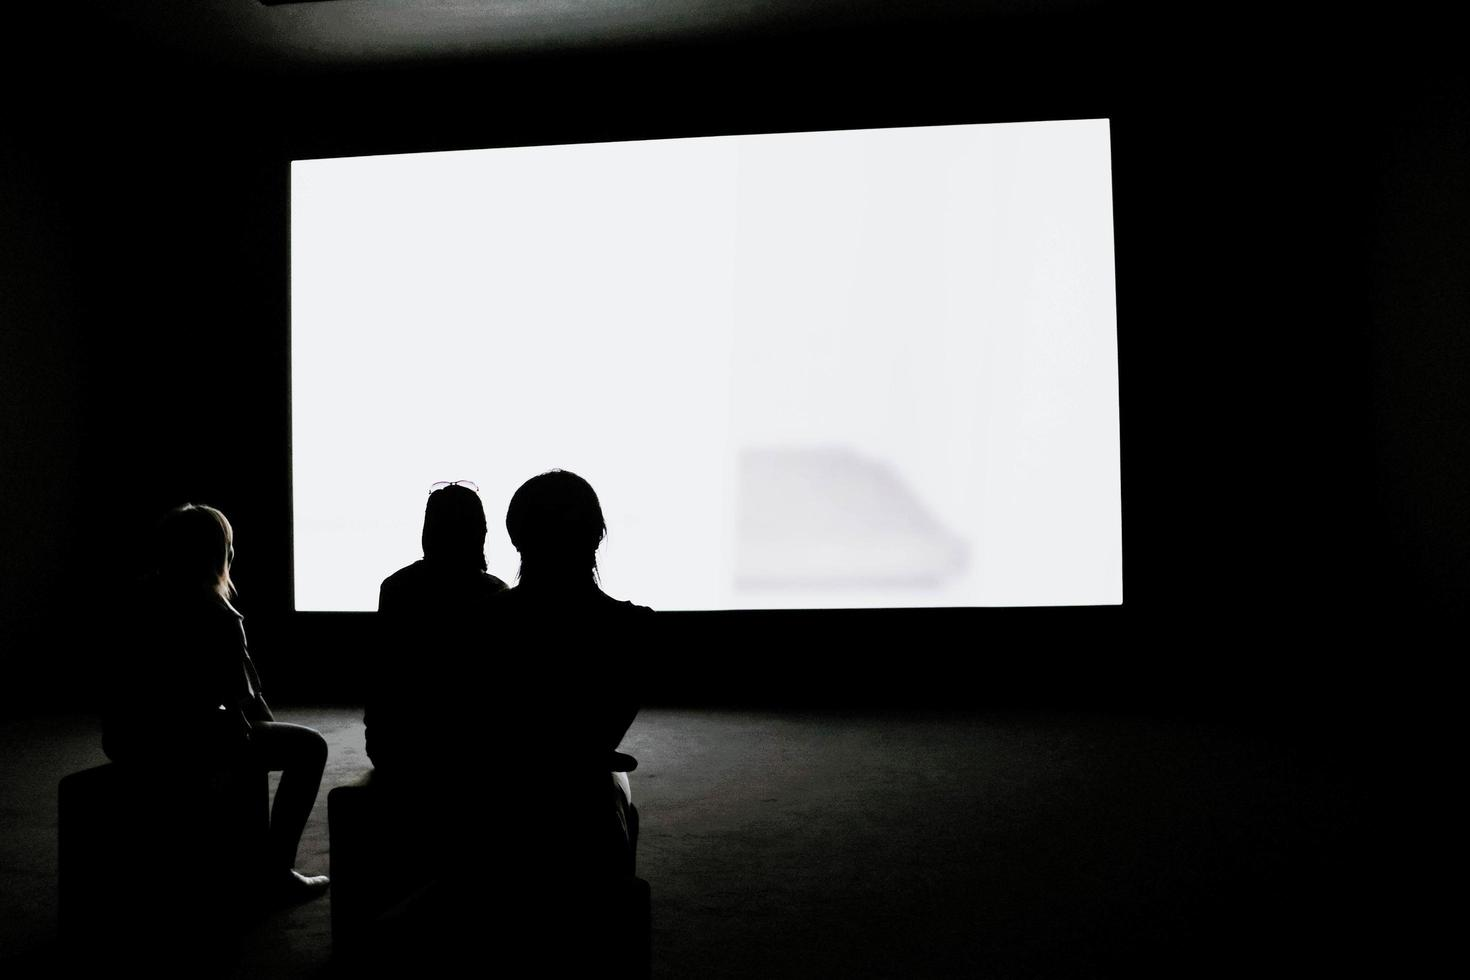 People looking at projection screen photo